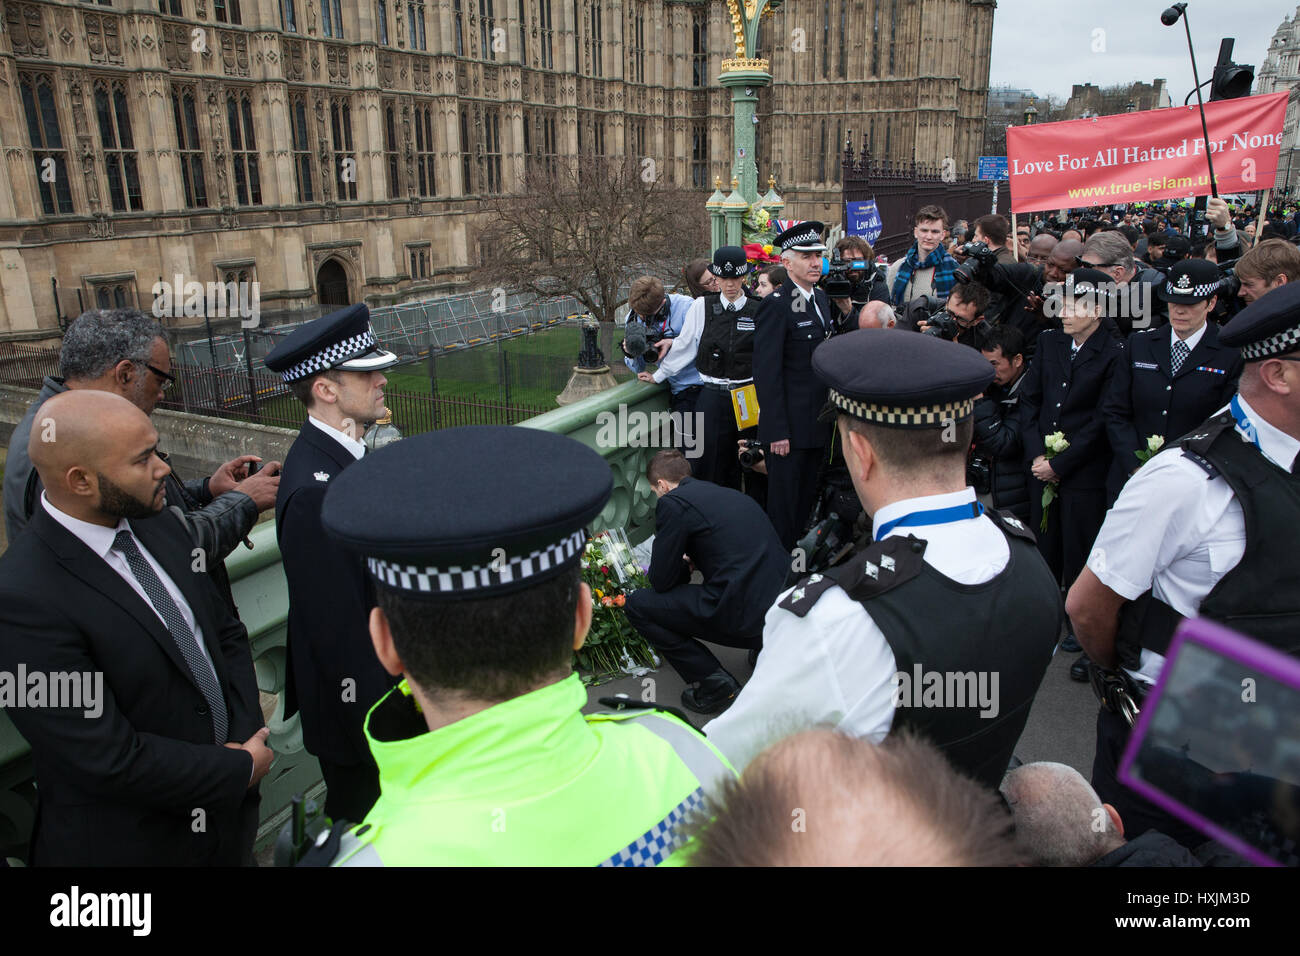 London, UK. 29th March, 2017. Metropolitan Police officers pay tribute on Westminster Bridge to the victims of last - Stock Image